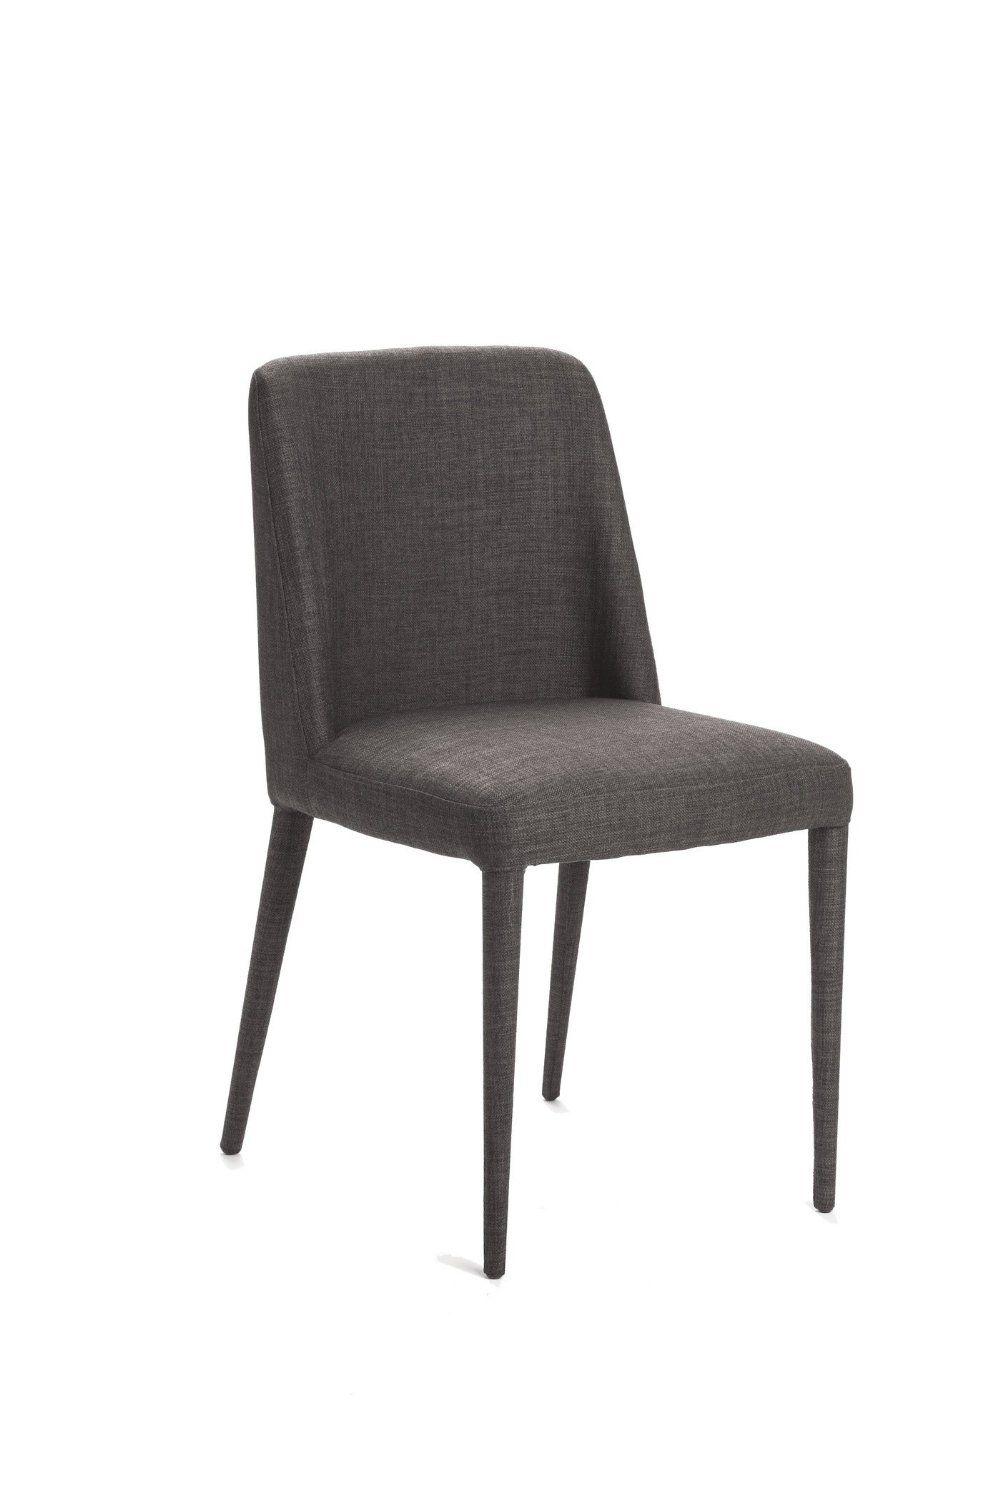 Amazon Com Mod Home Collection Lorc Dining Chair Gray Modern